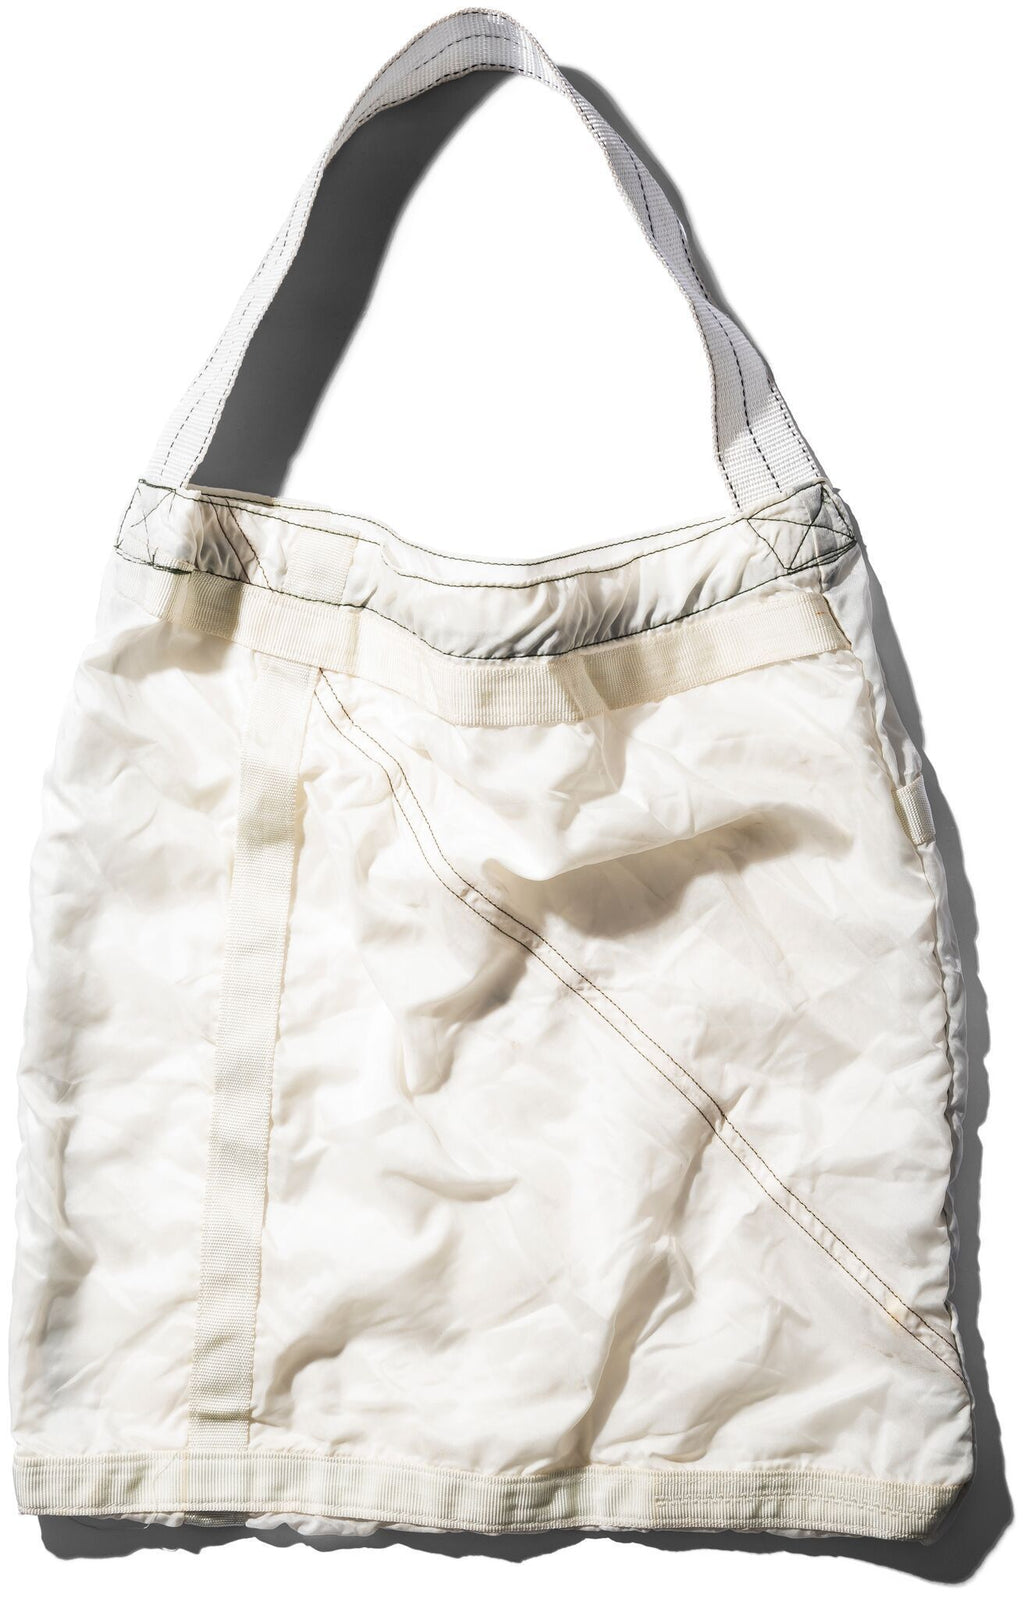 VINTAGE PARACHUTE LIGHT BAG - WHITE